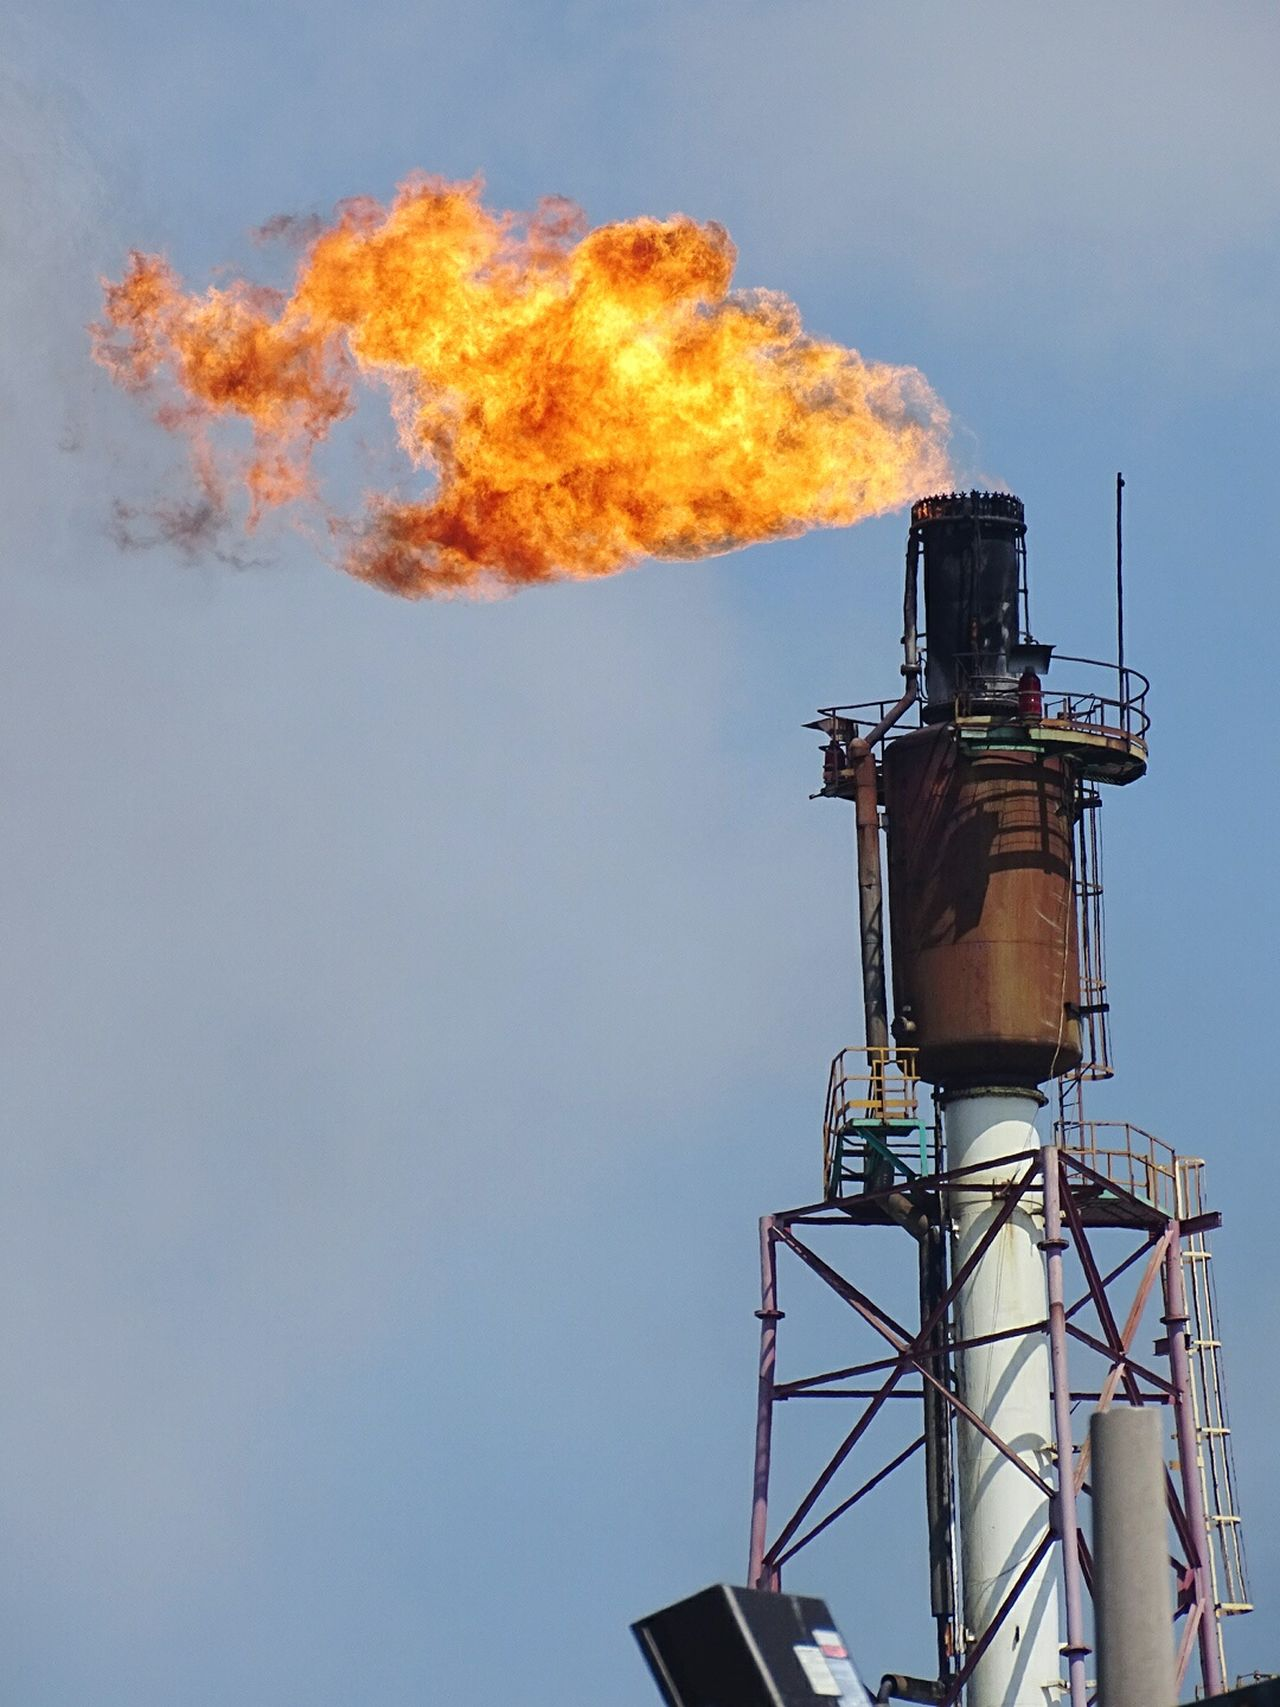 Business Finance And Industry Flame Sky Refueling Outdoors Refinery